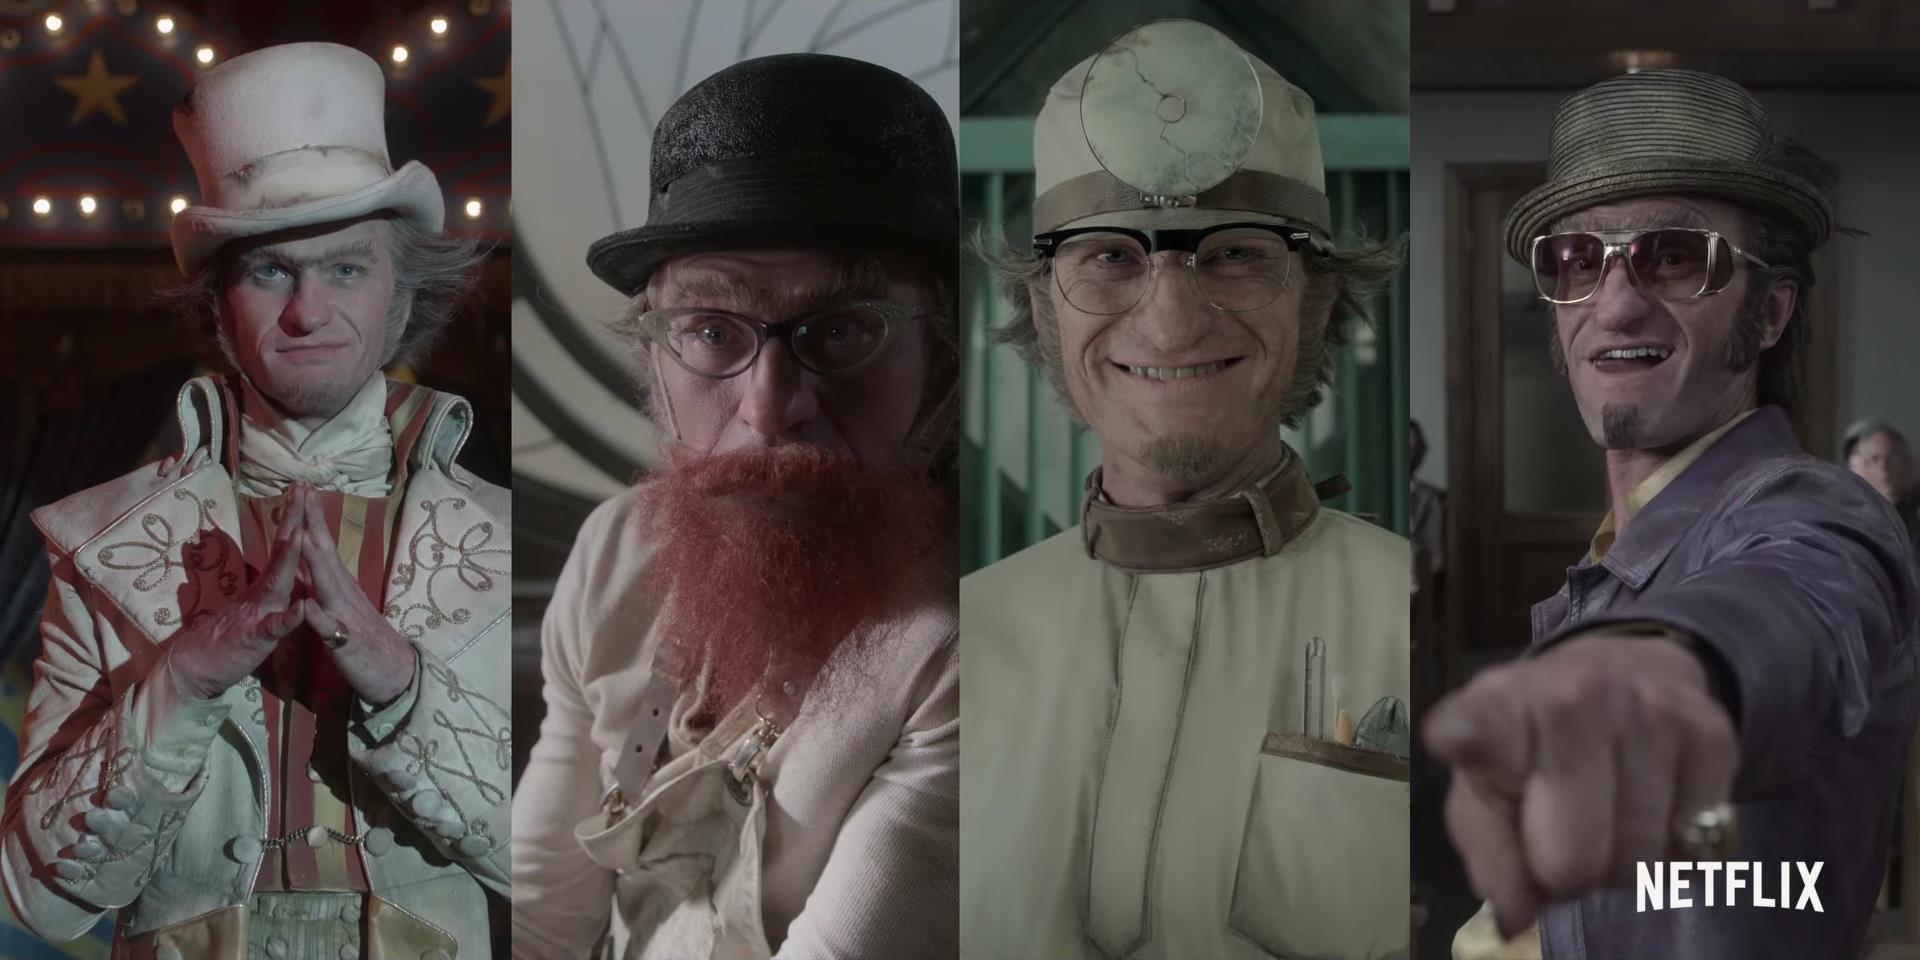 A Series of Unfortunate Events Season 2 Trailer The Baudelaire Misfortunes Get Worse